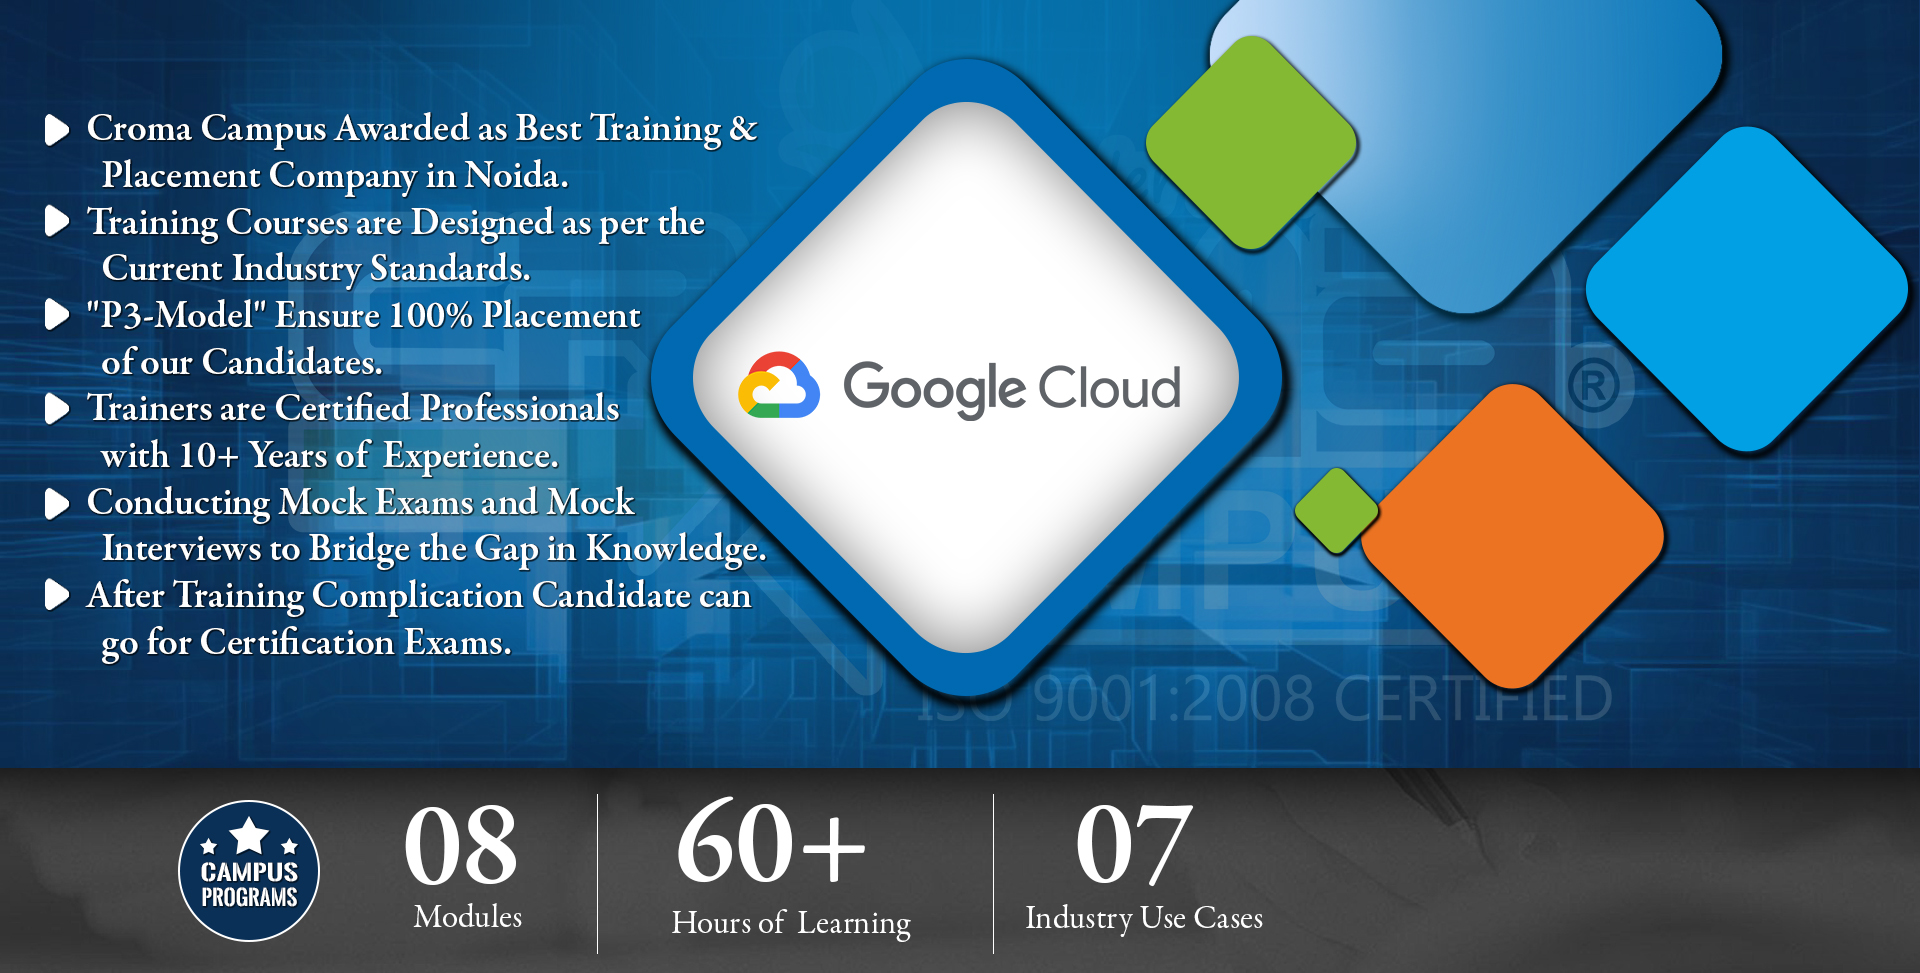 Google Cloud Training in Gurgaon